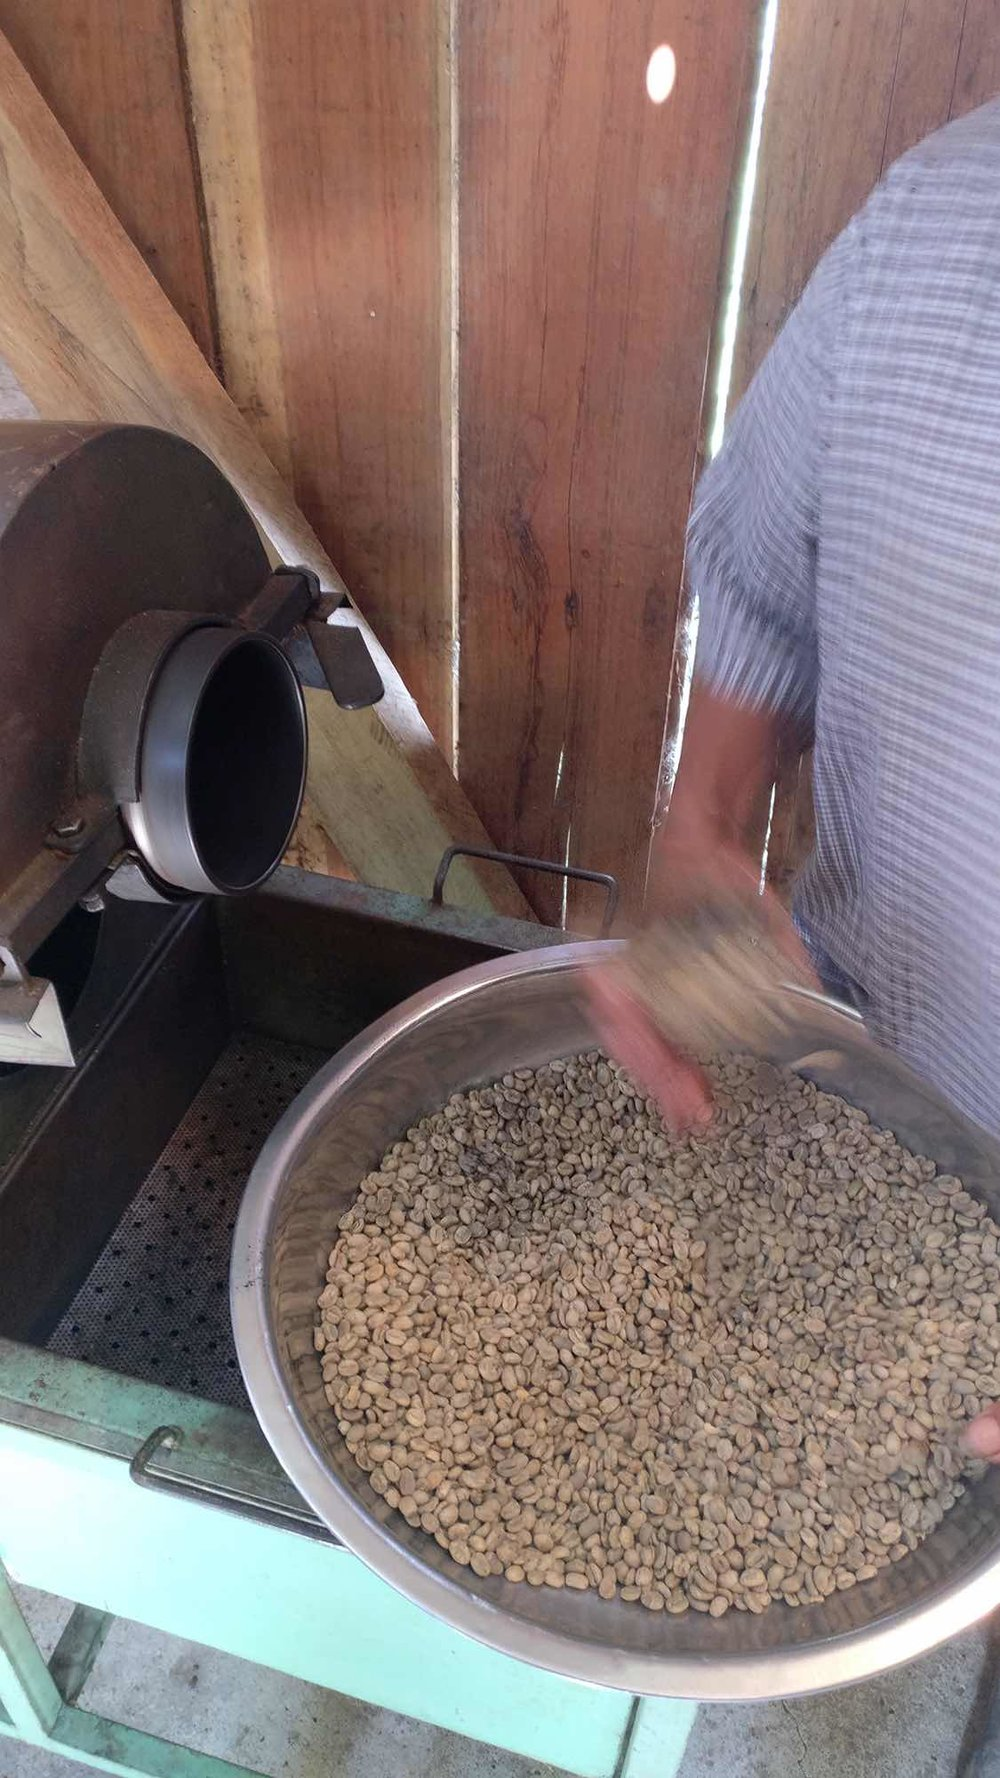 Roasting coffee in Pijao, Colombia